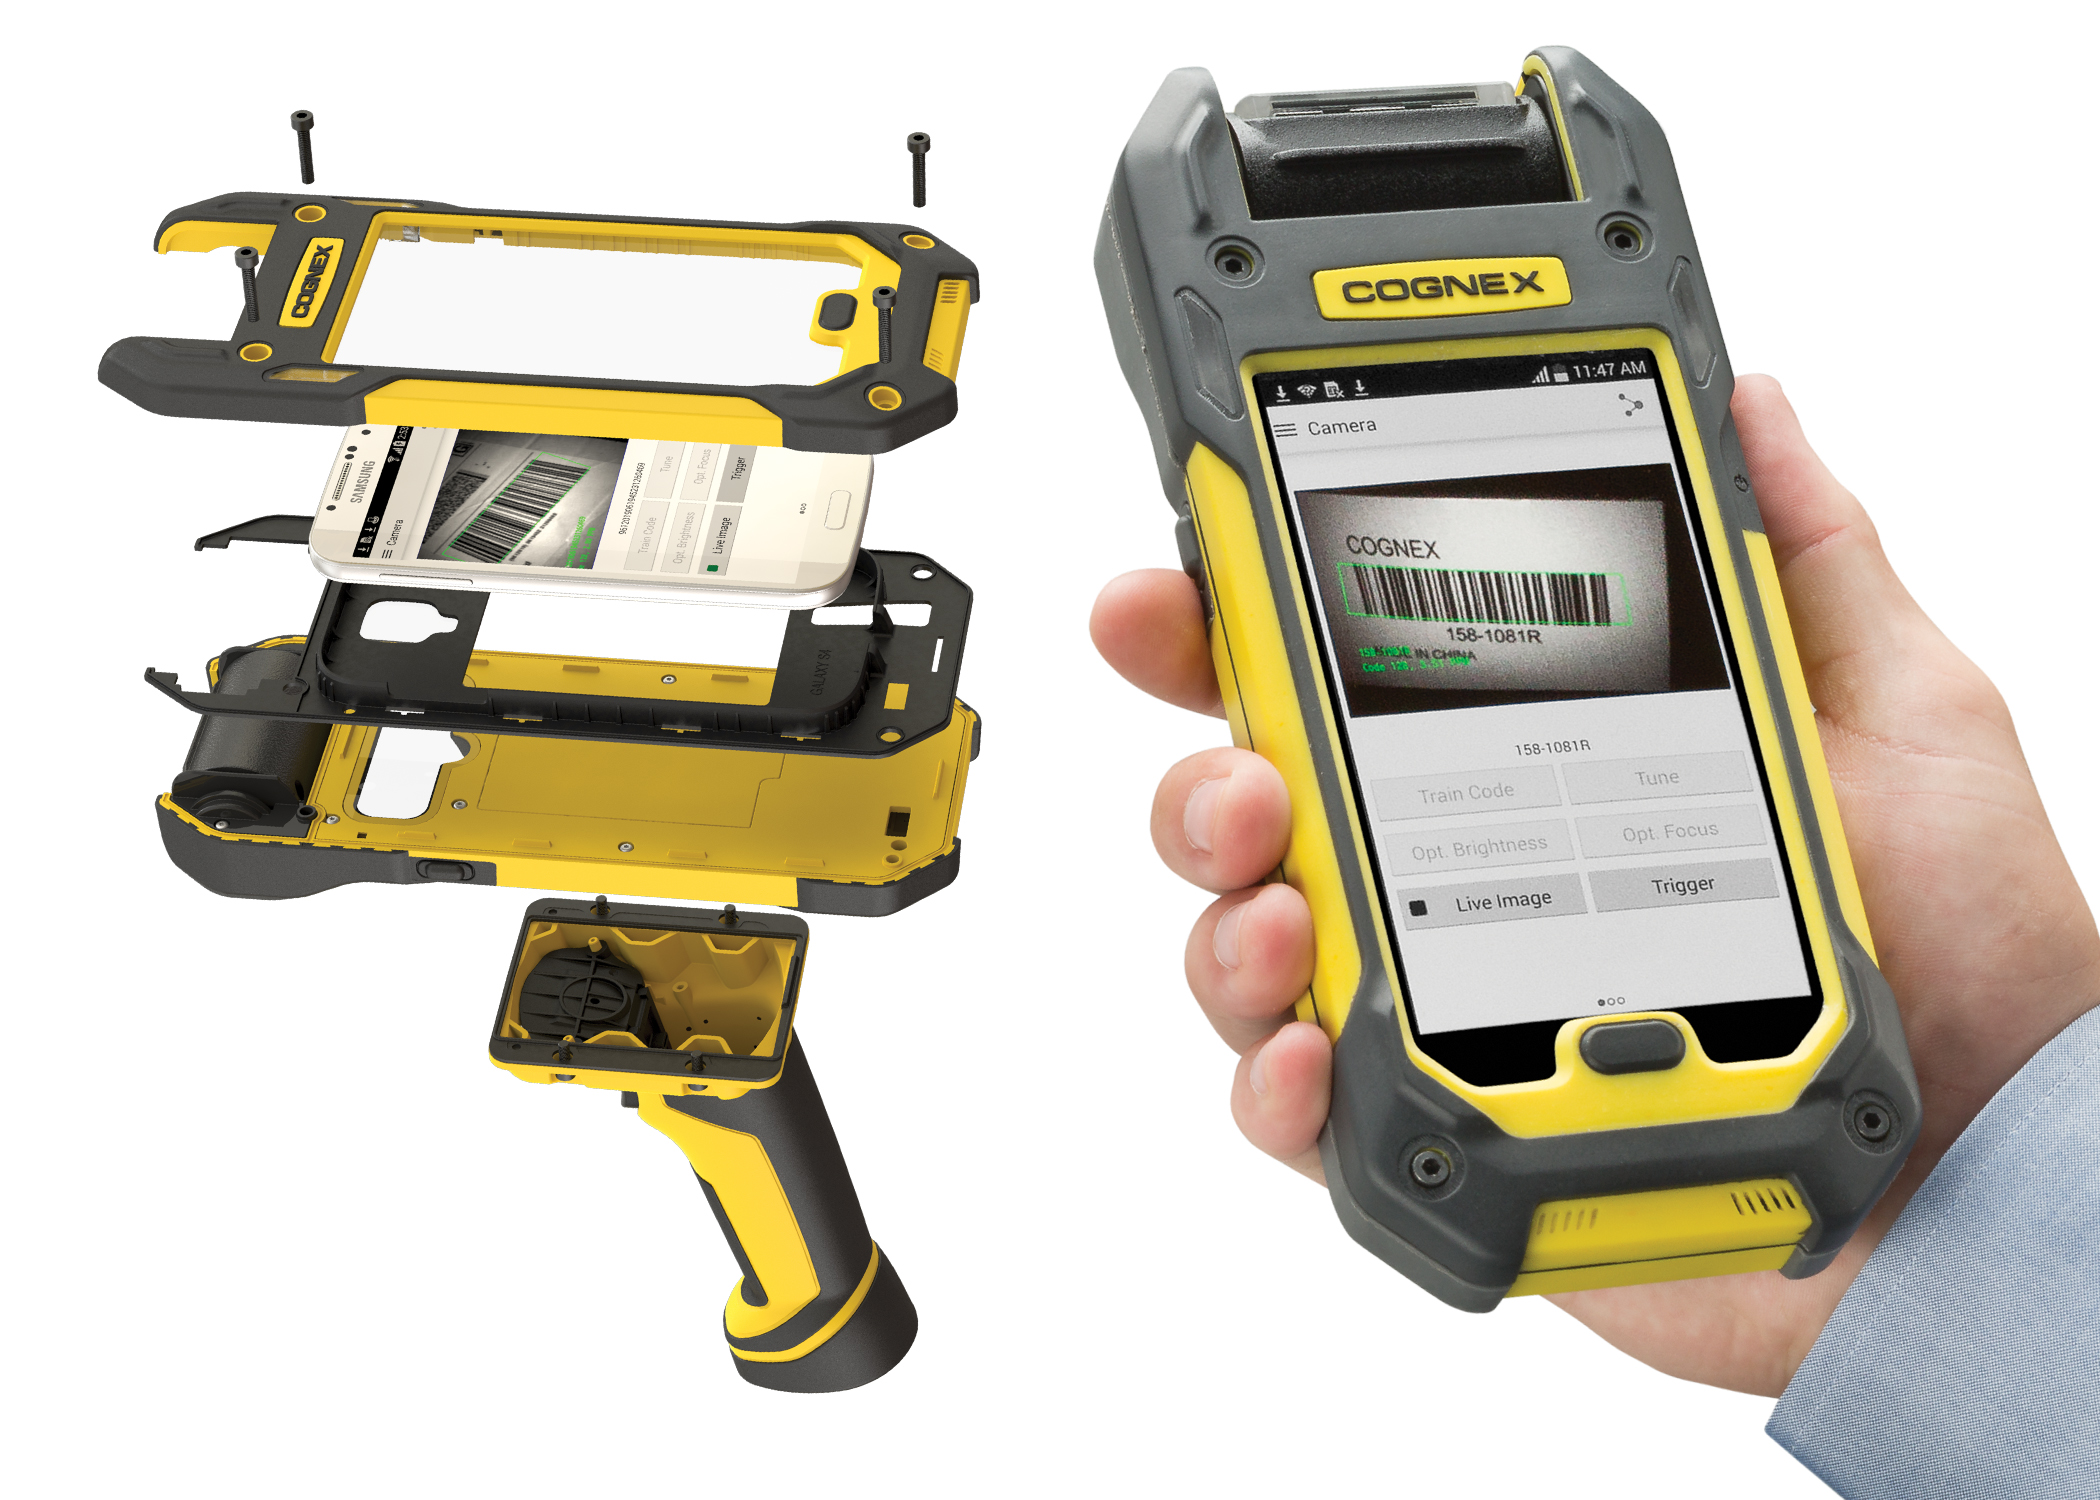 cognex MX1000 mobile terminal pieces and assembled handheld mobile computer